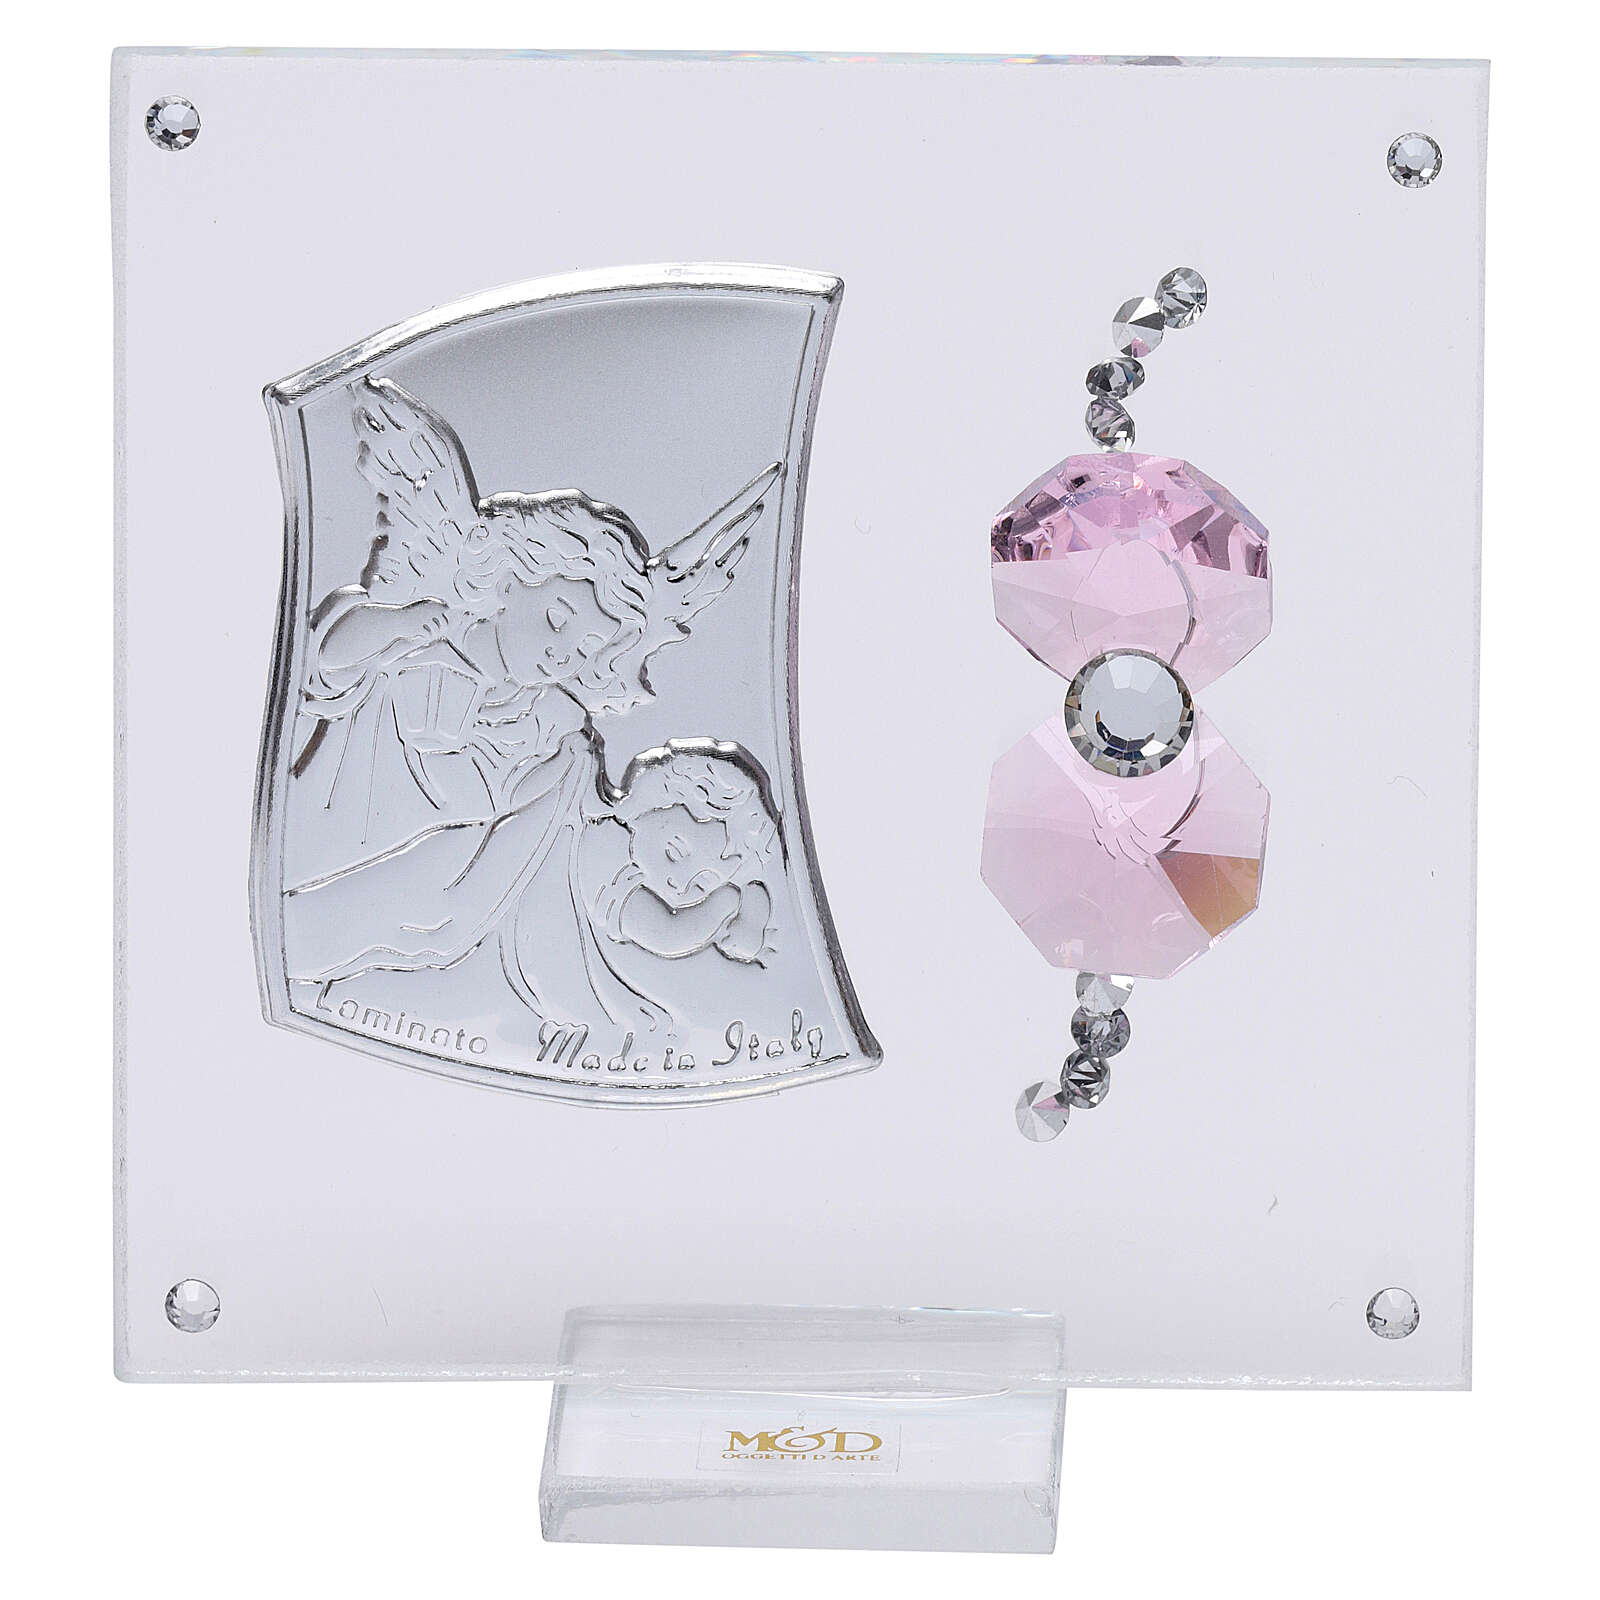 Favor Guardian angel of silver foil for girl 3x3 in 3